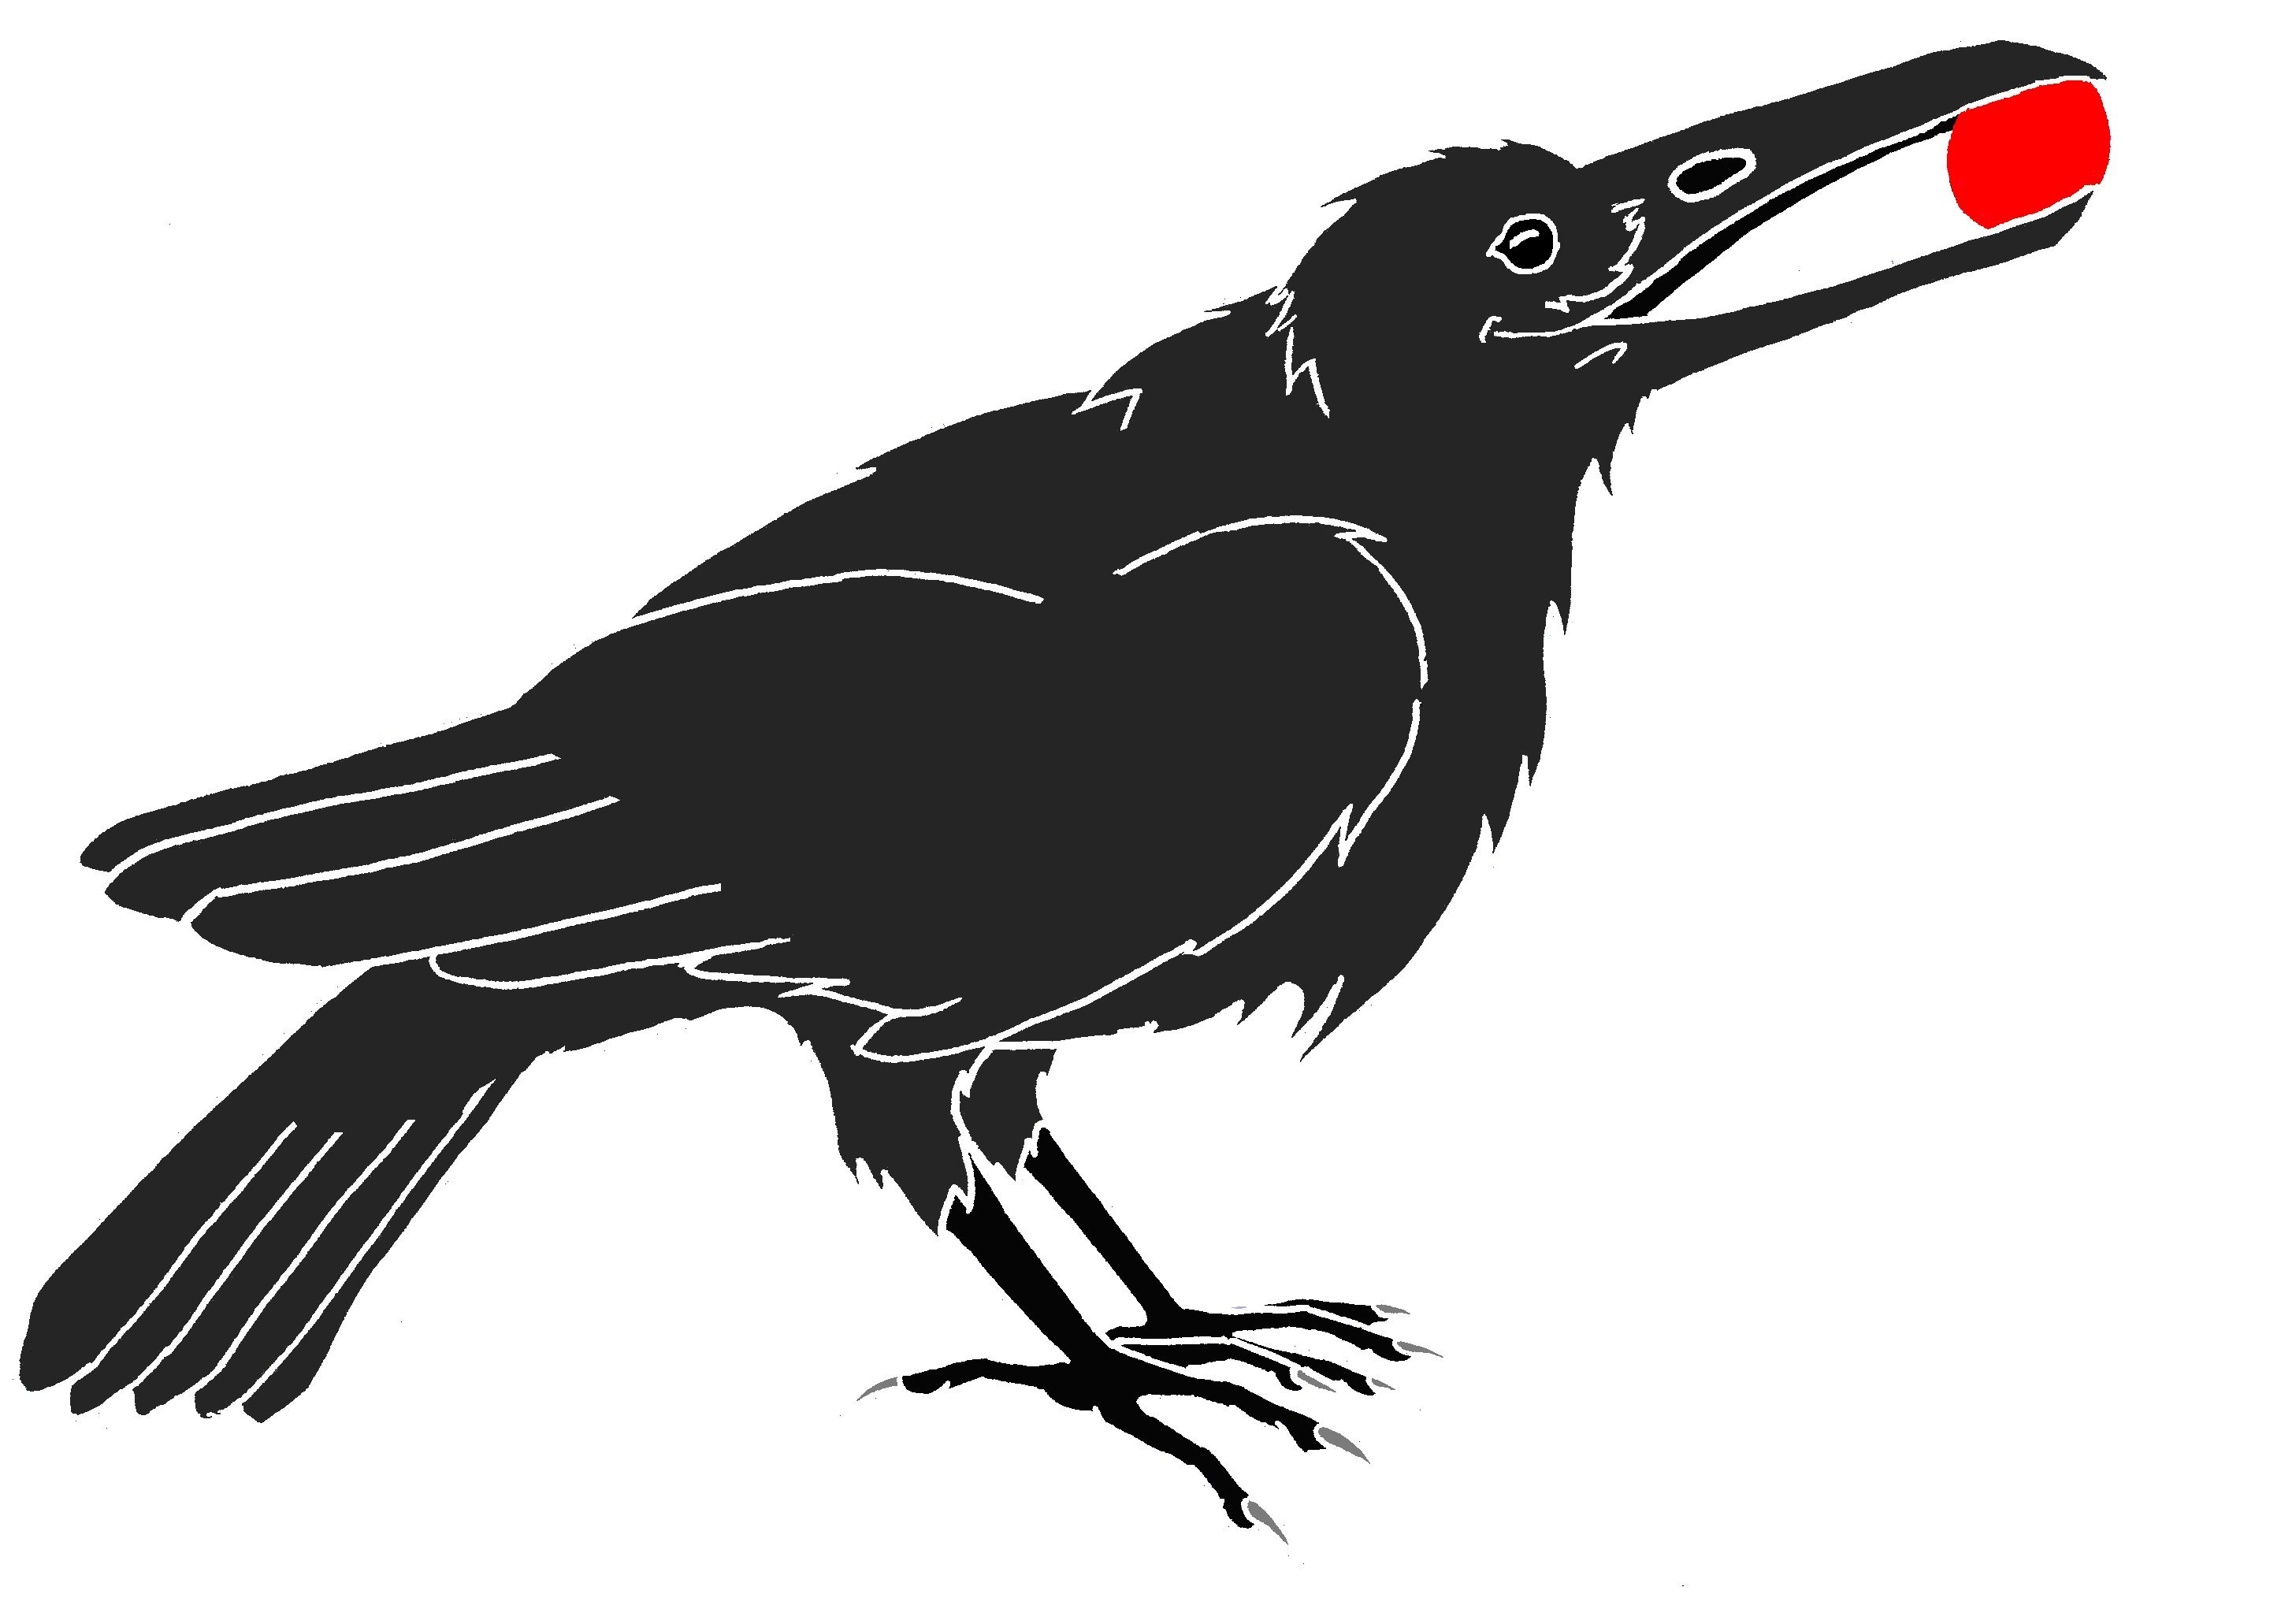 crow drawing northwest crow drawing by charlie potter drawing crow